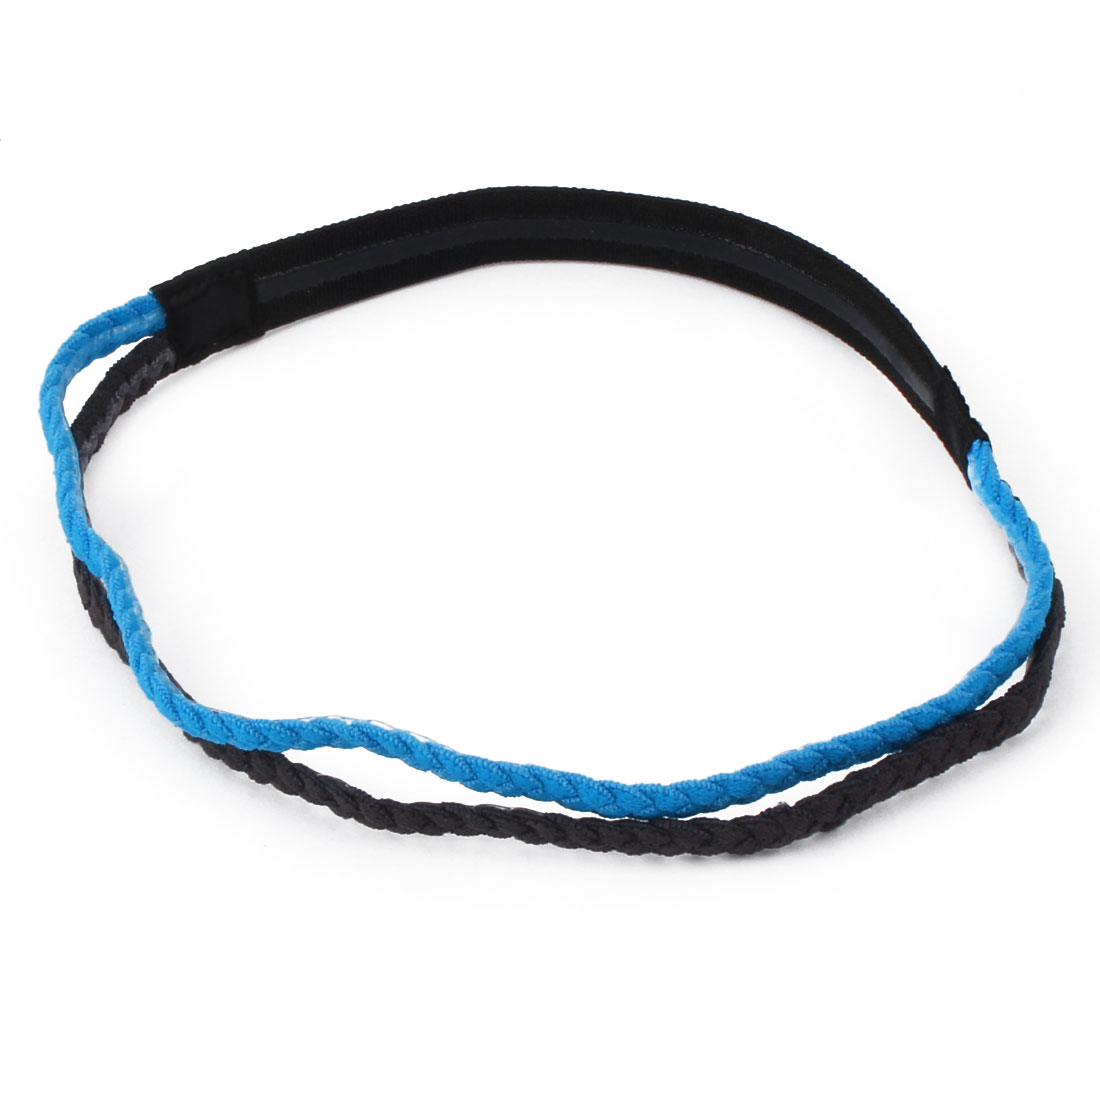 Athletics Elastic Fabric Double Braid Design Non-slip Sports Headband Headwrap Blue Black